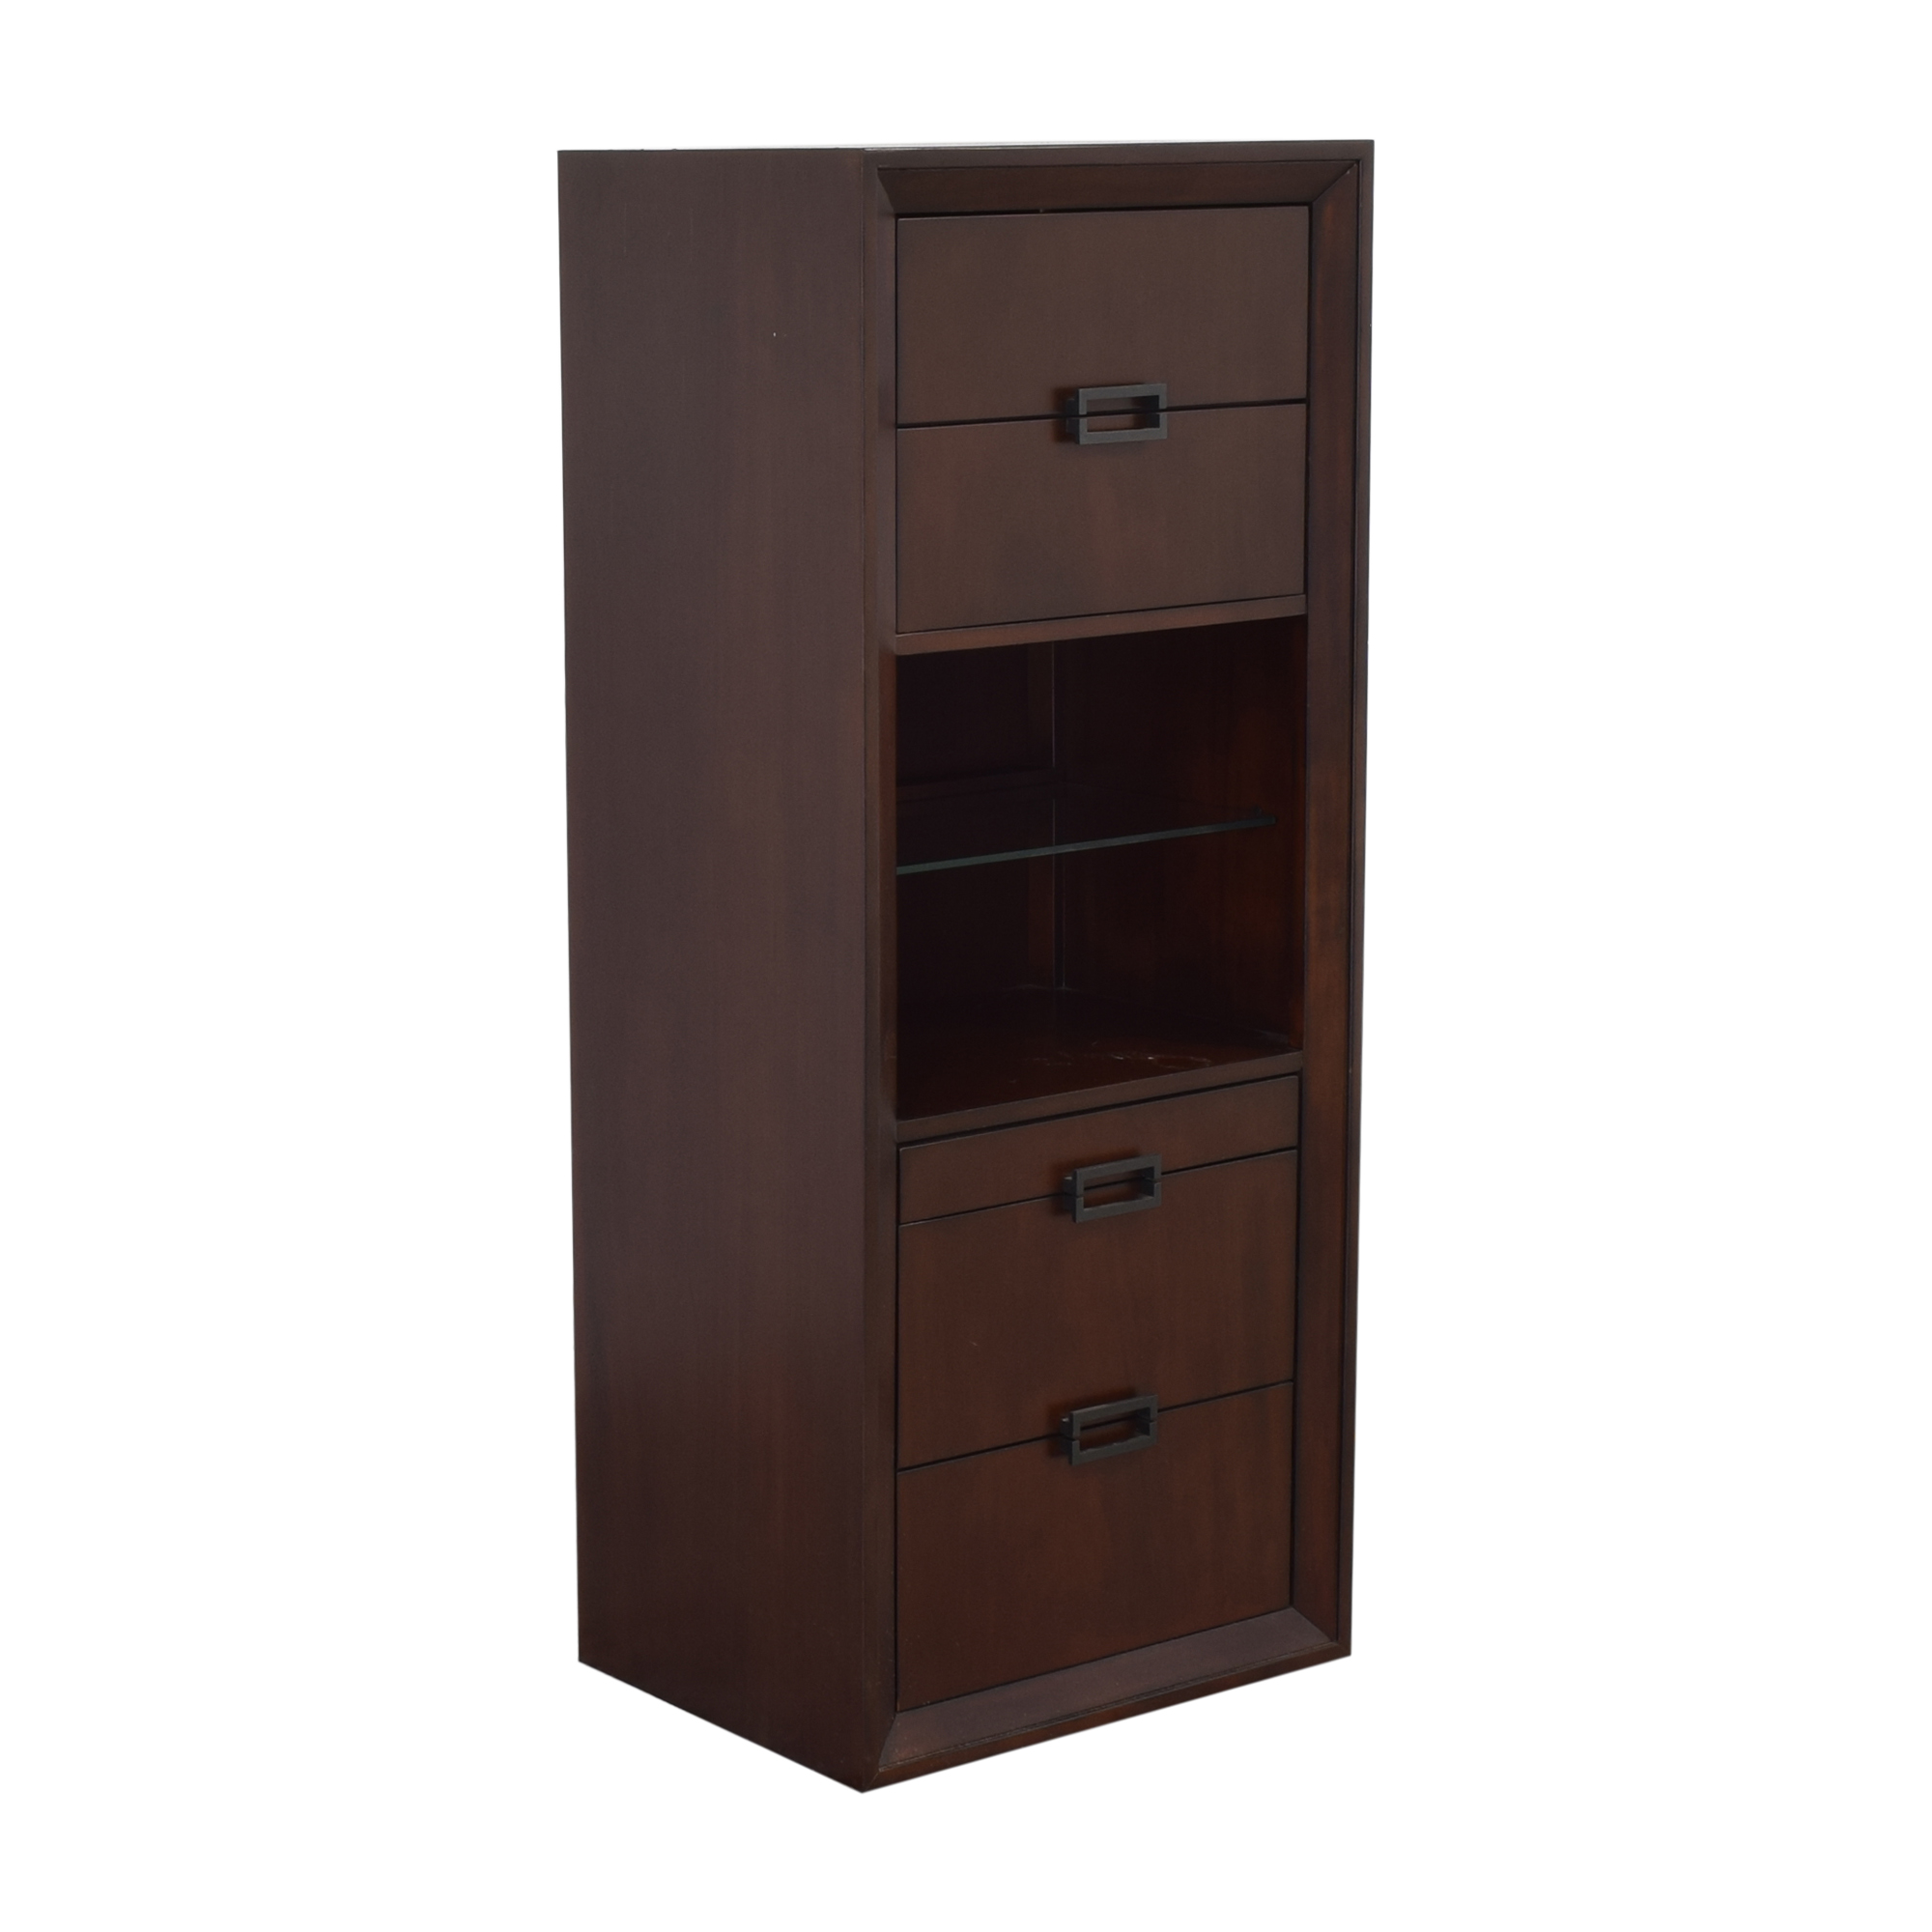 Raymour & Flanigan Raymour & Flanigan Vista Bedside Cabinet for sale